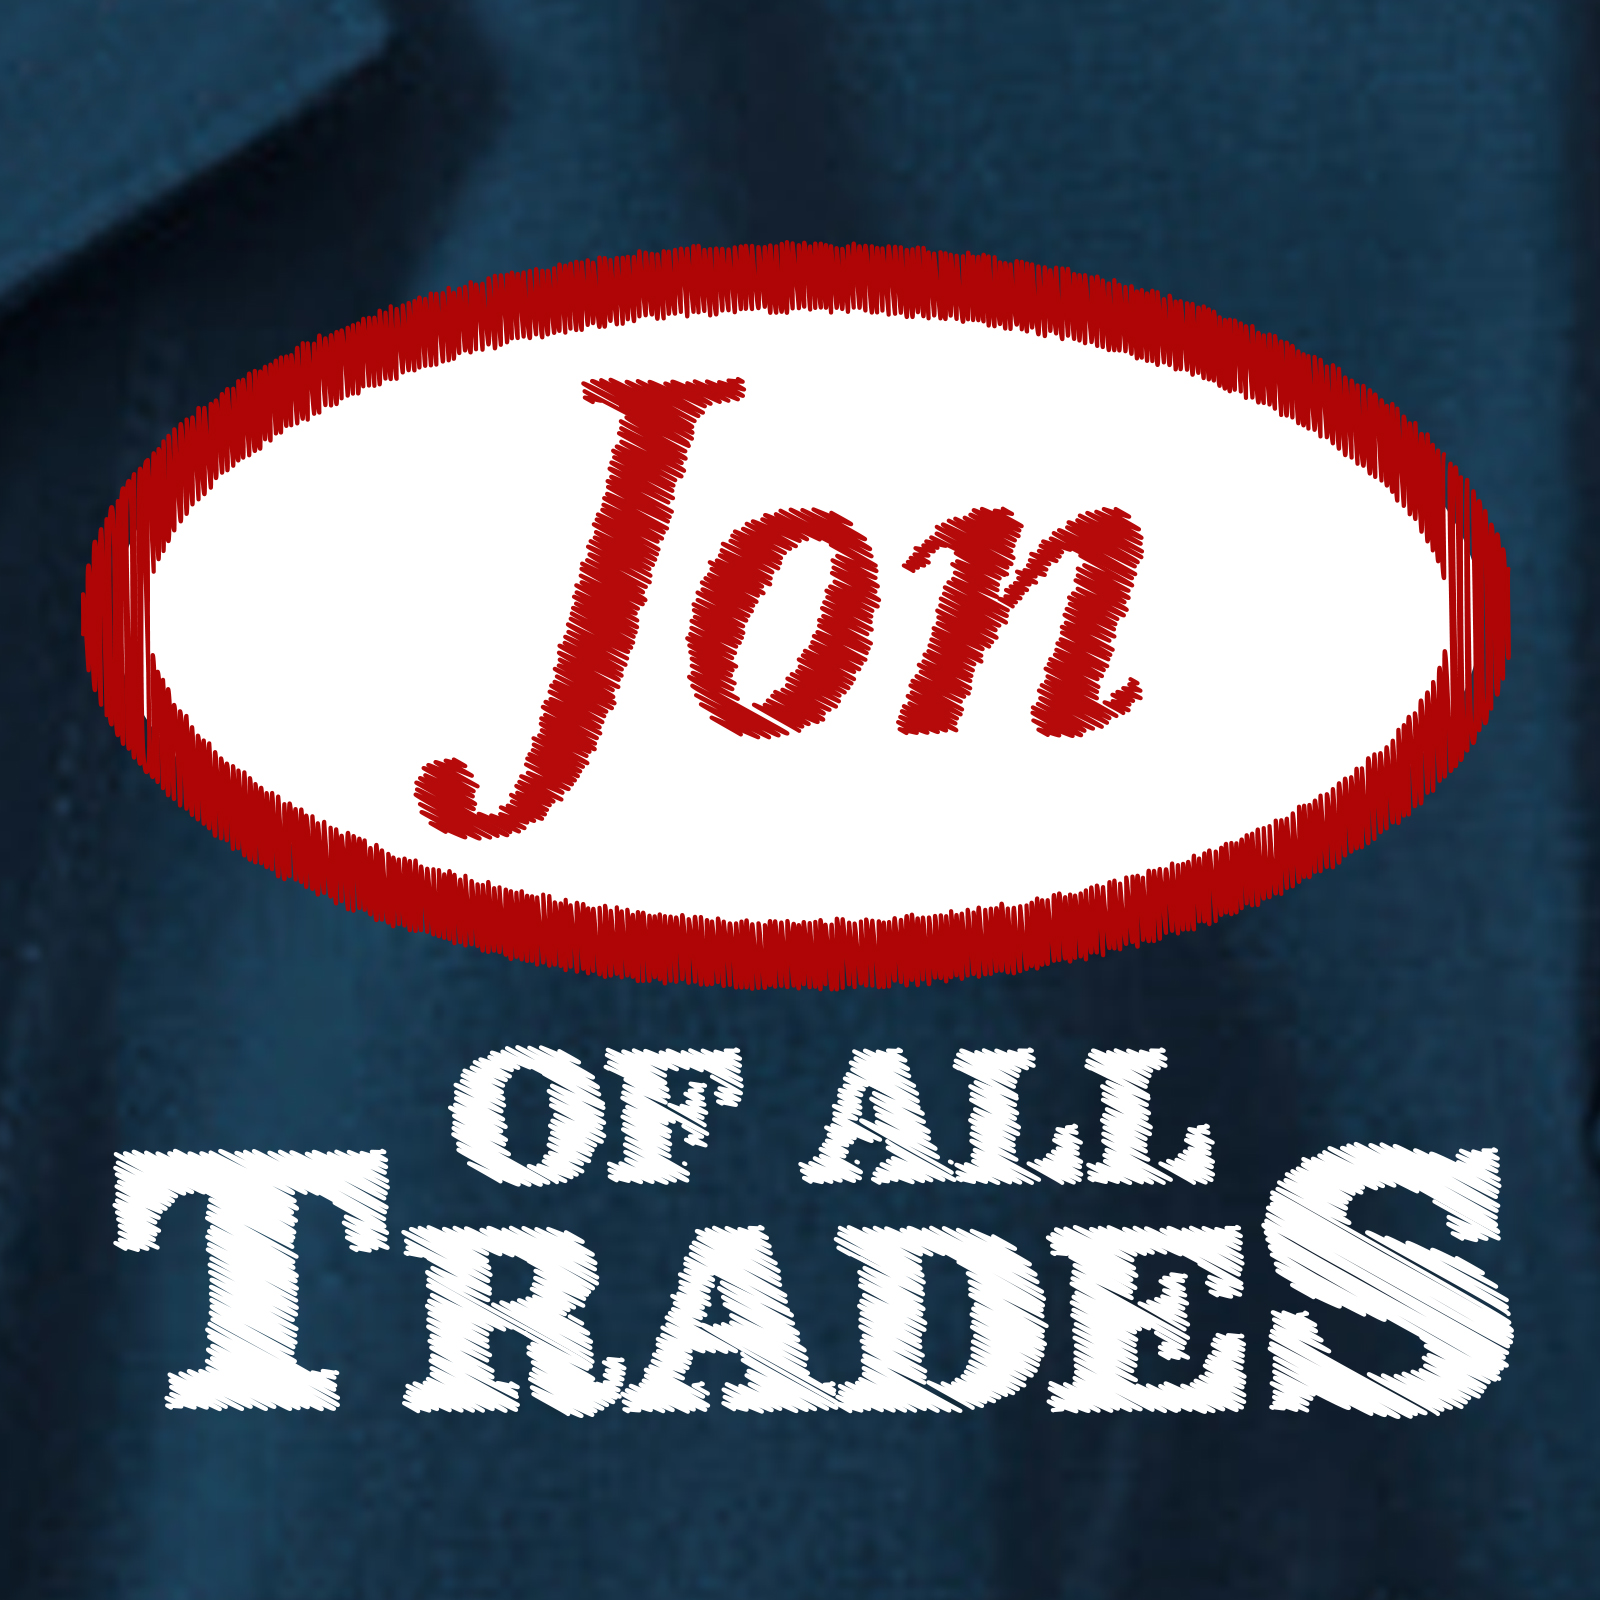 Jon of All Trades